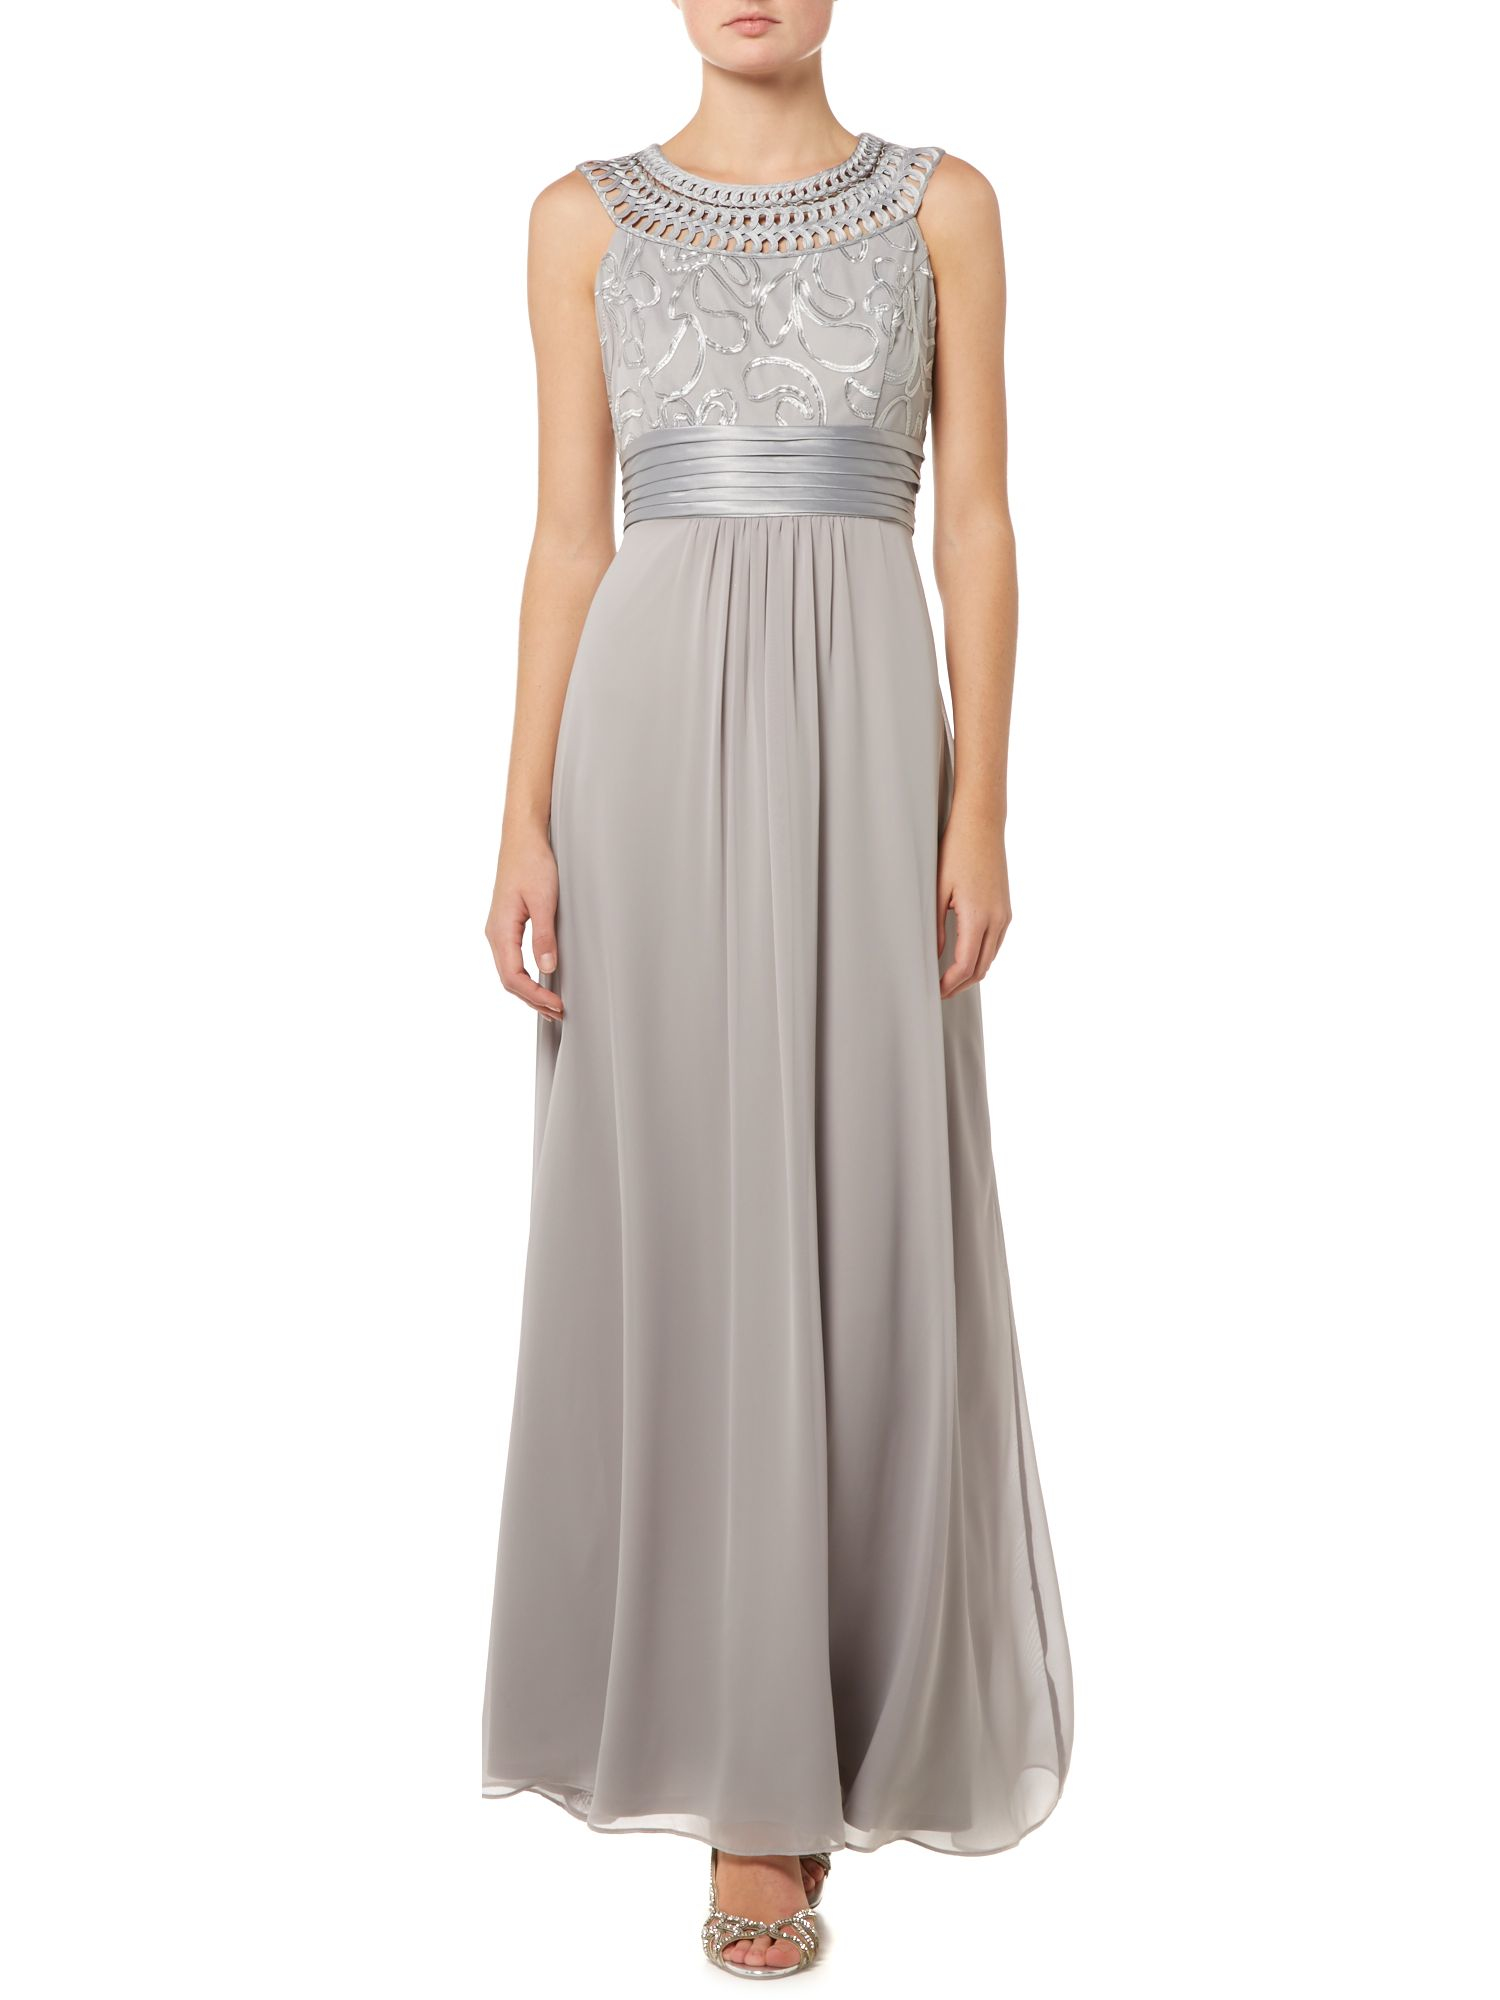 Eliza j halter style gown with embroidered neckline in